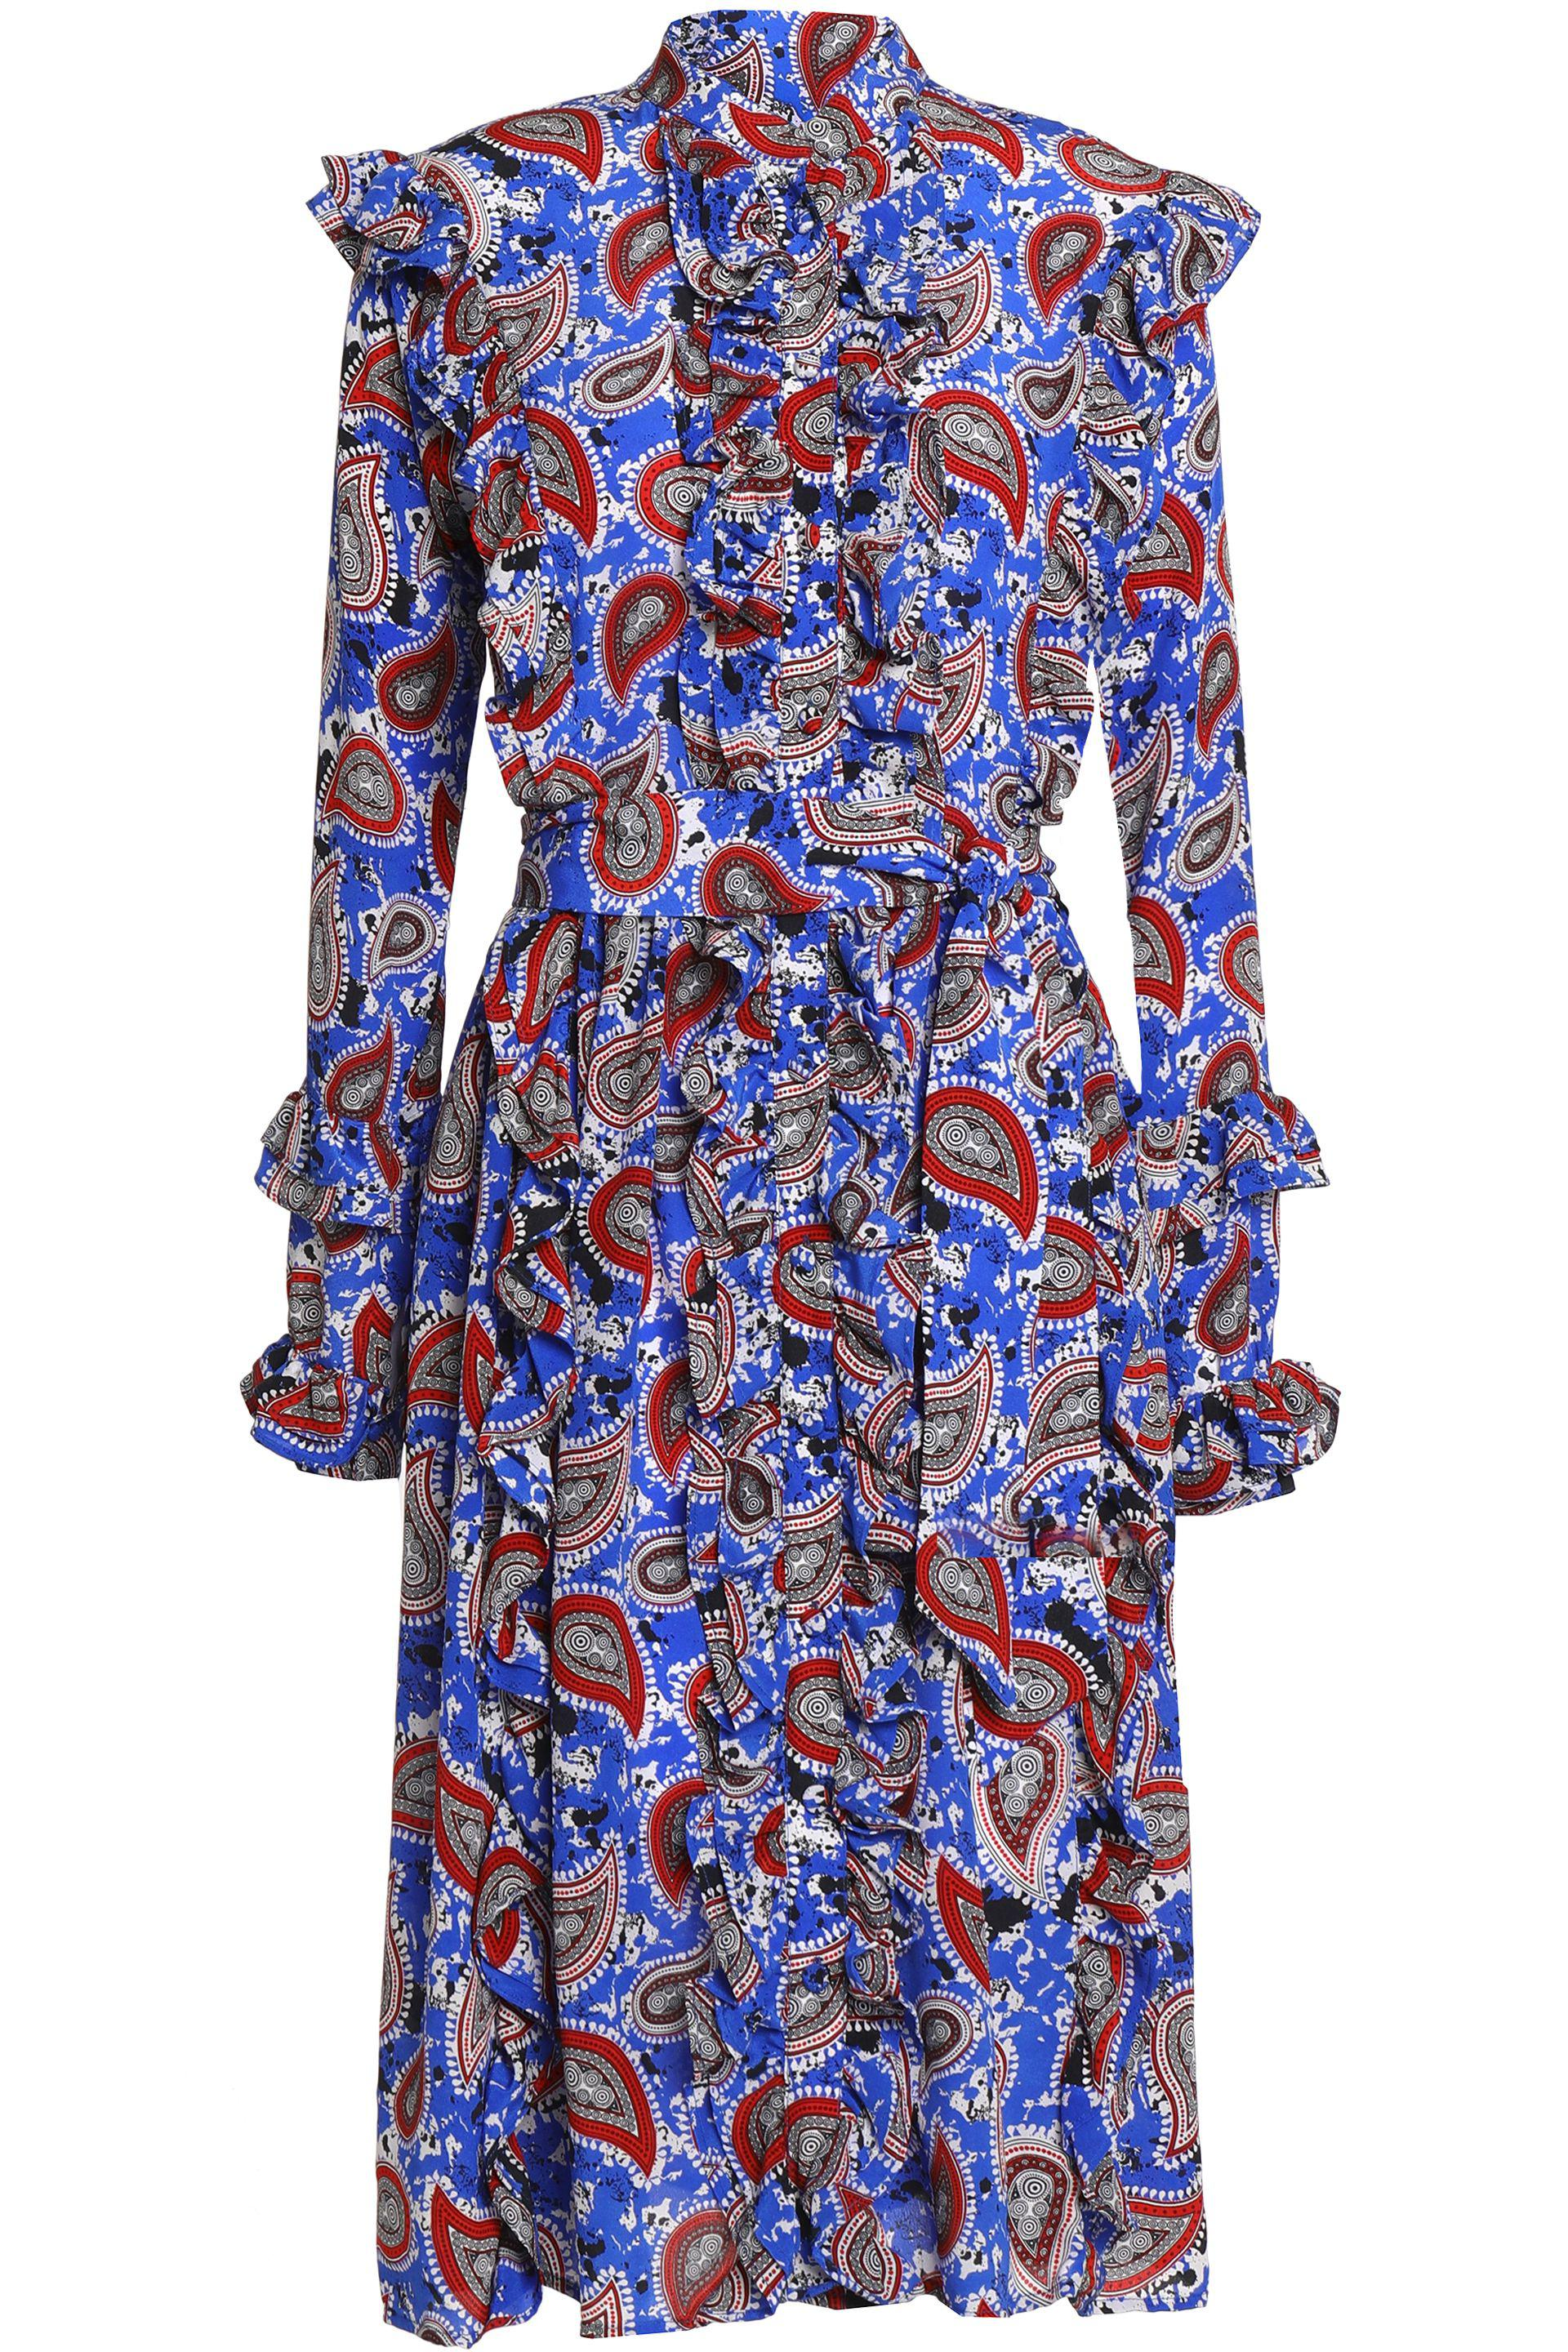 Clearance How Much Dodo Bar Or Woman Ruffle-trimmed Printed Silk-crepe De Chine Maxi Dress Blue Size 42 Dodo Bar Or Free Shipping Clearance zMqH0vbjVh